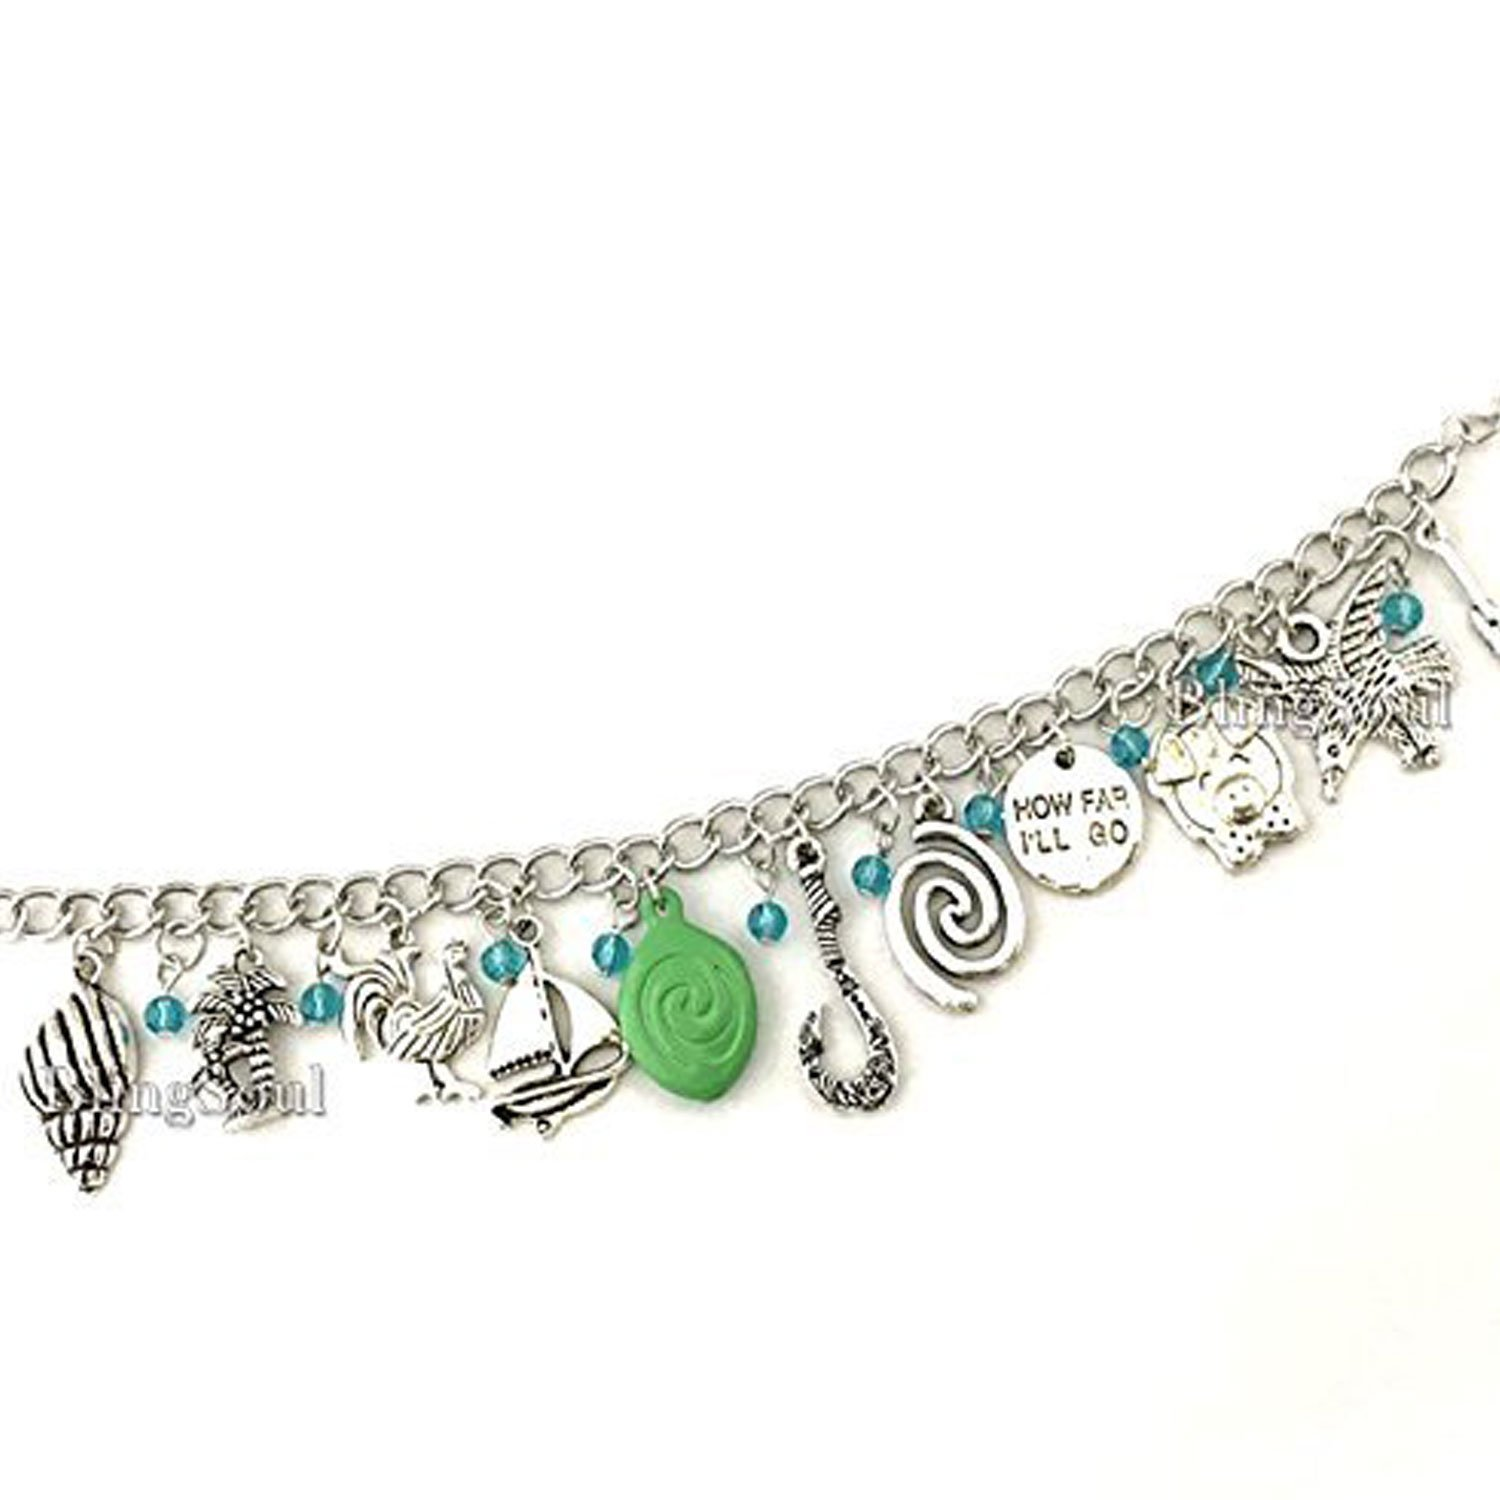 BlingSoul Maui Moana Charm Bracelet - Maui Hook Jewelry Moana Gift Merchandise for Women by BlingSoul (Image #5)